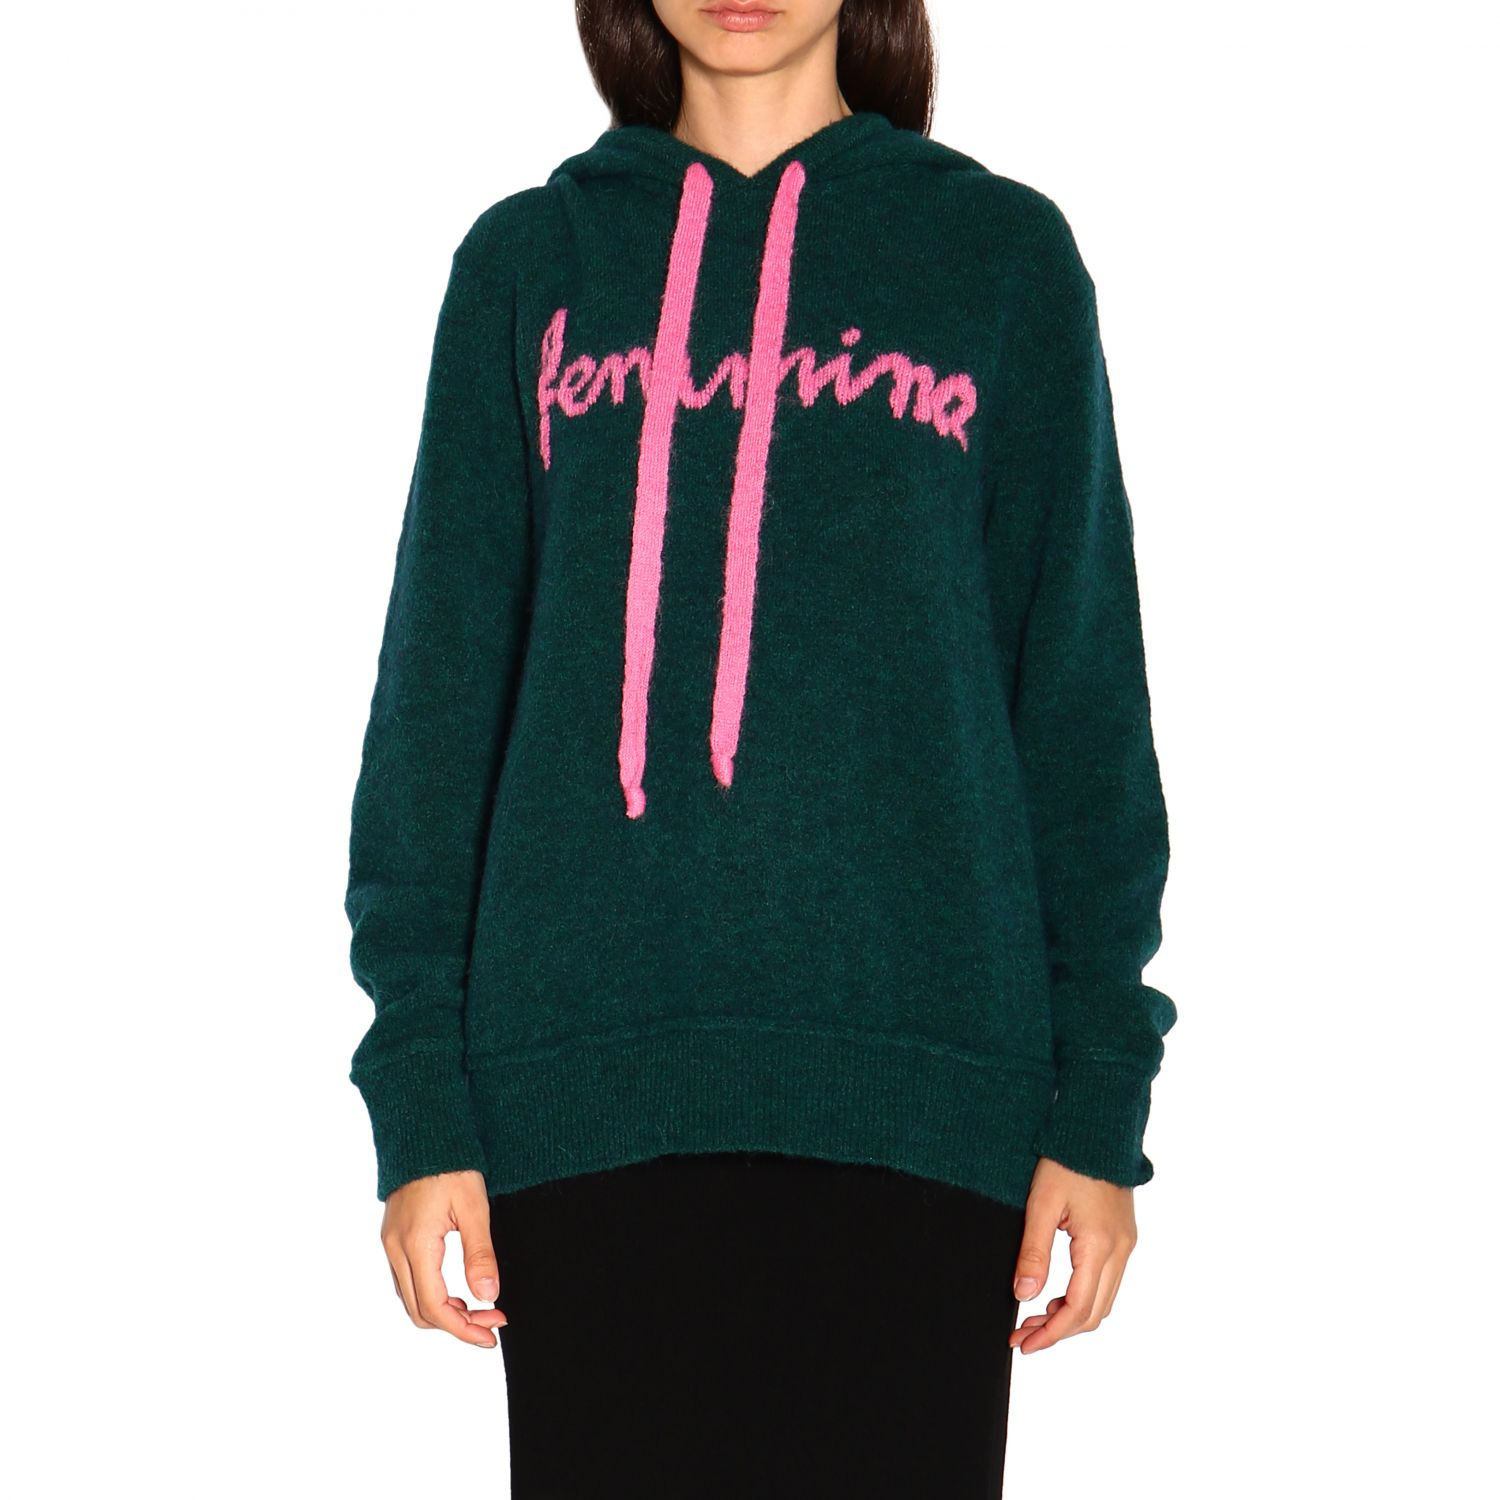 Sweatshirt women Marco Rambaldi green 1